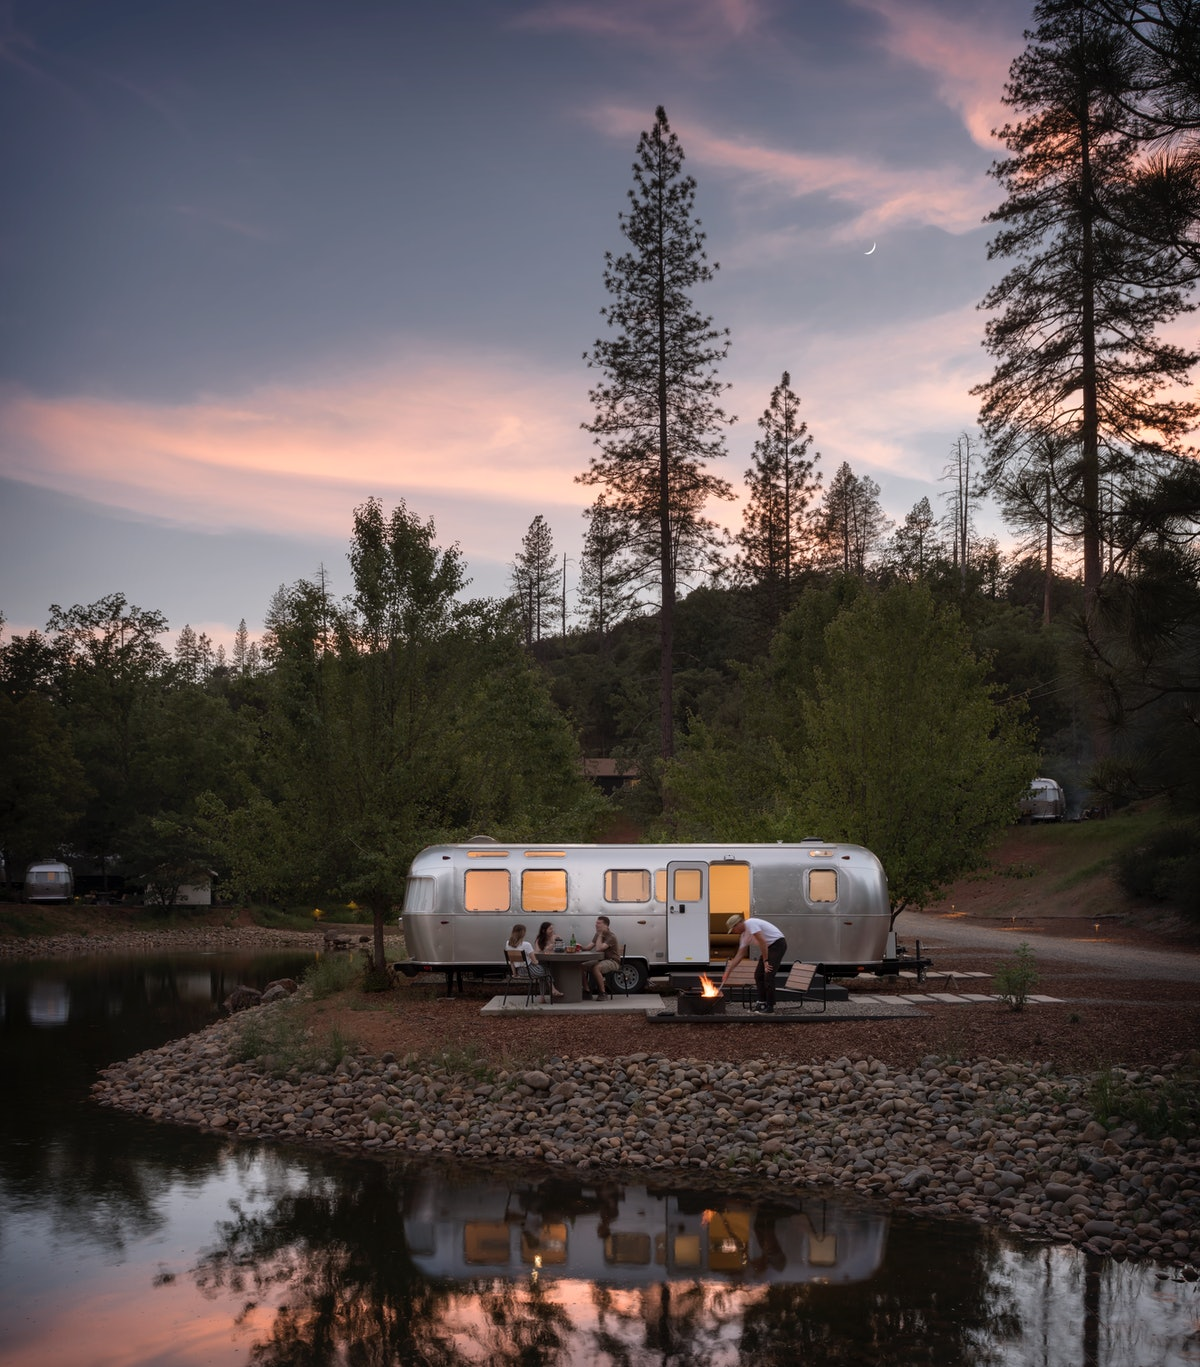 A group of friends hangs out near an AutoCamp airstream trailer at sunset.